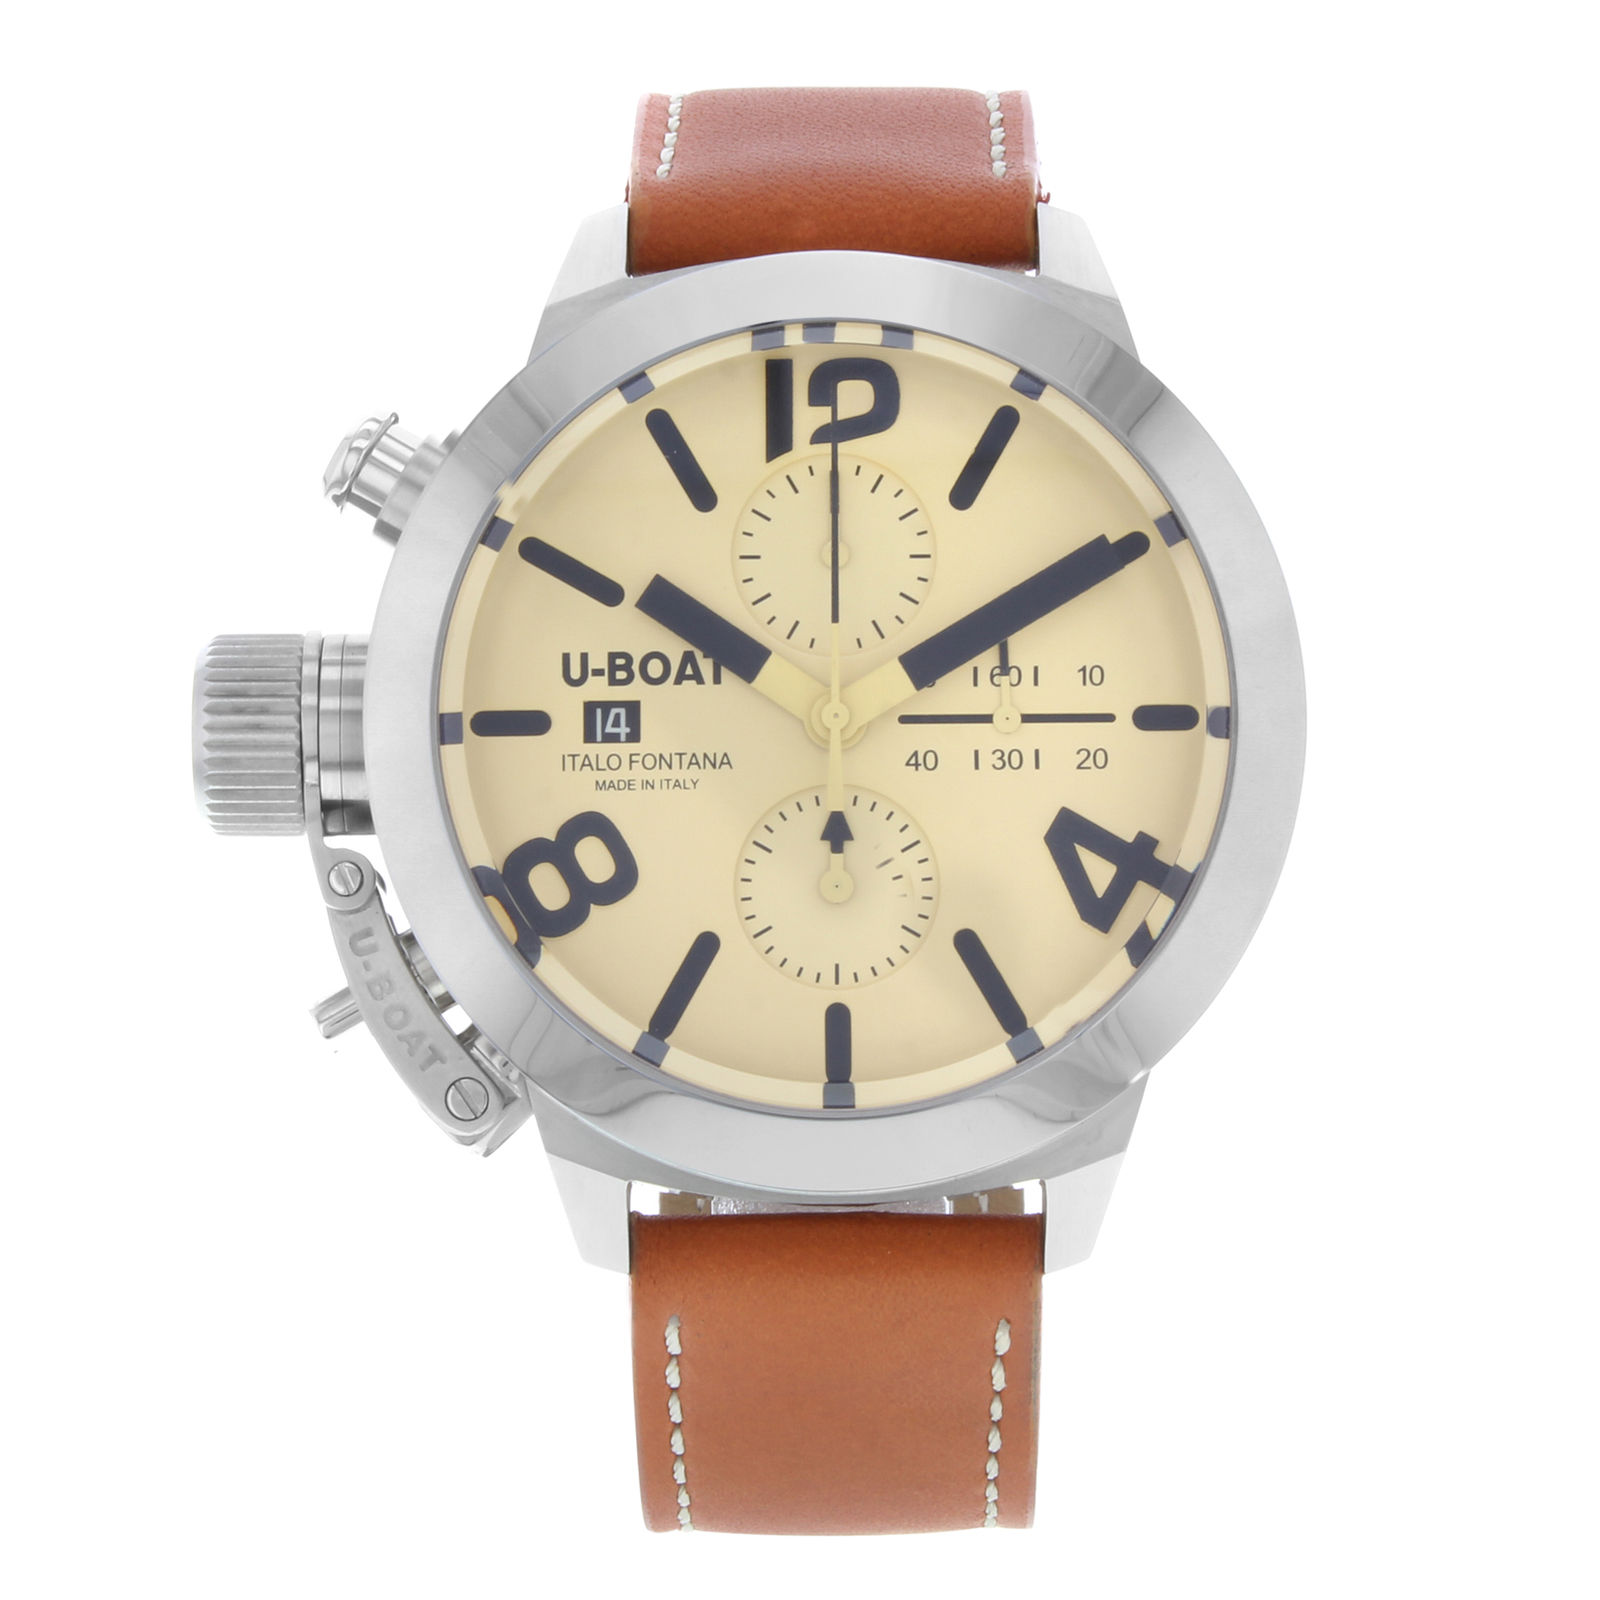 U-Boat Classico Chronograph Date 45mm Automatic in Stainless Steel